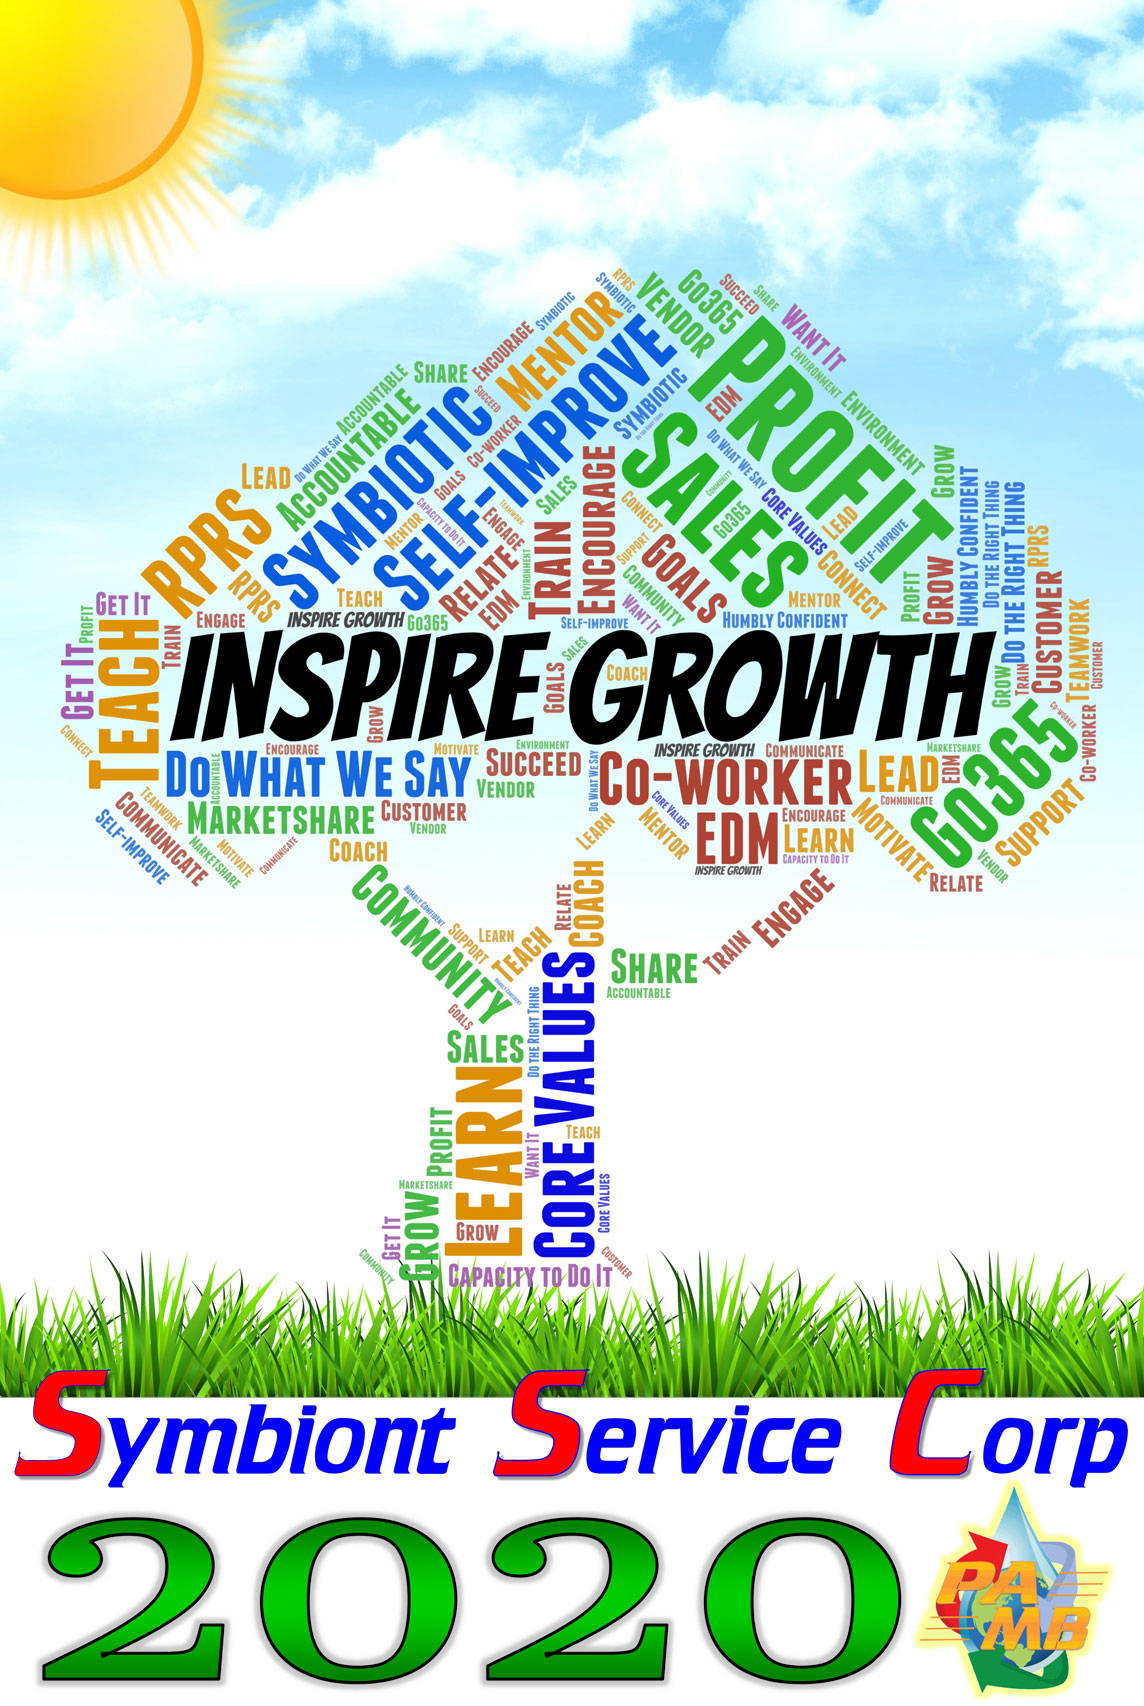 Inspire Growth tag cloud in shape of a tree